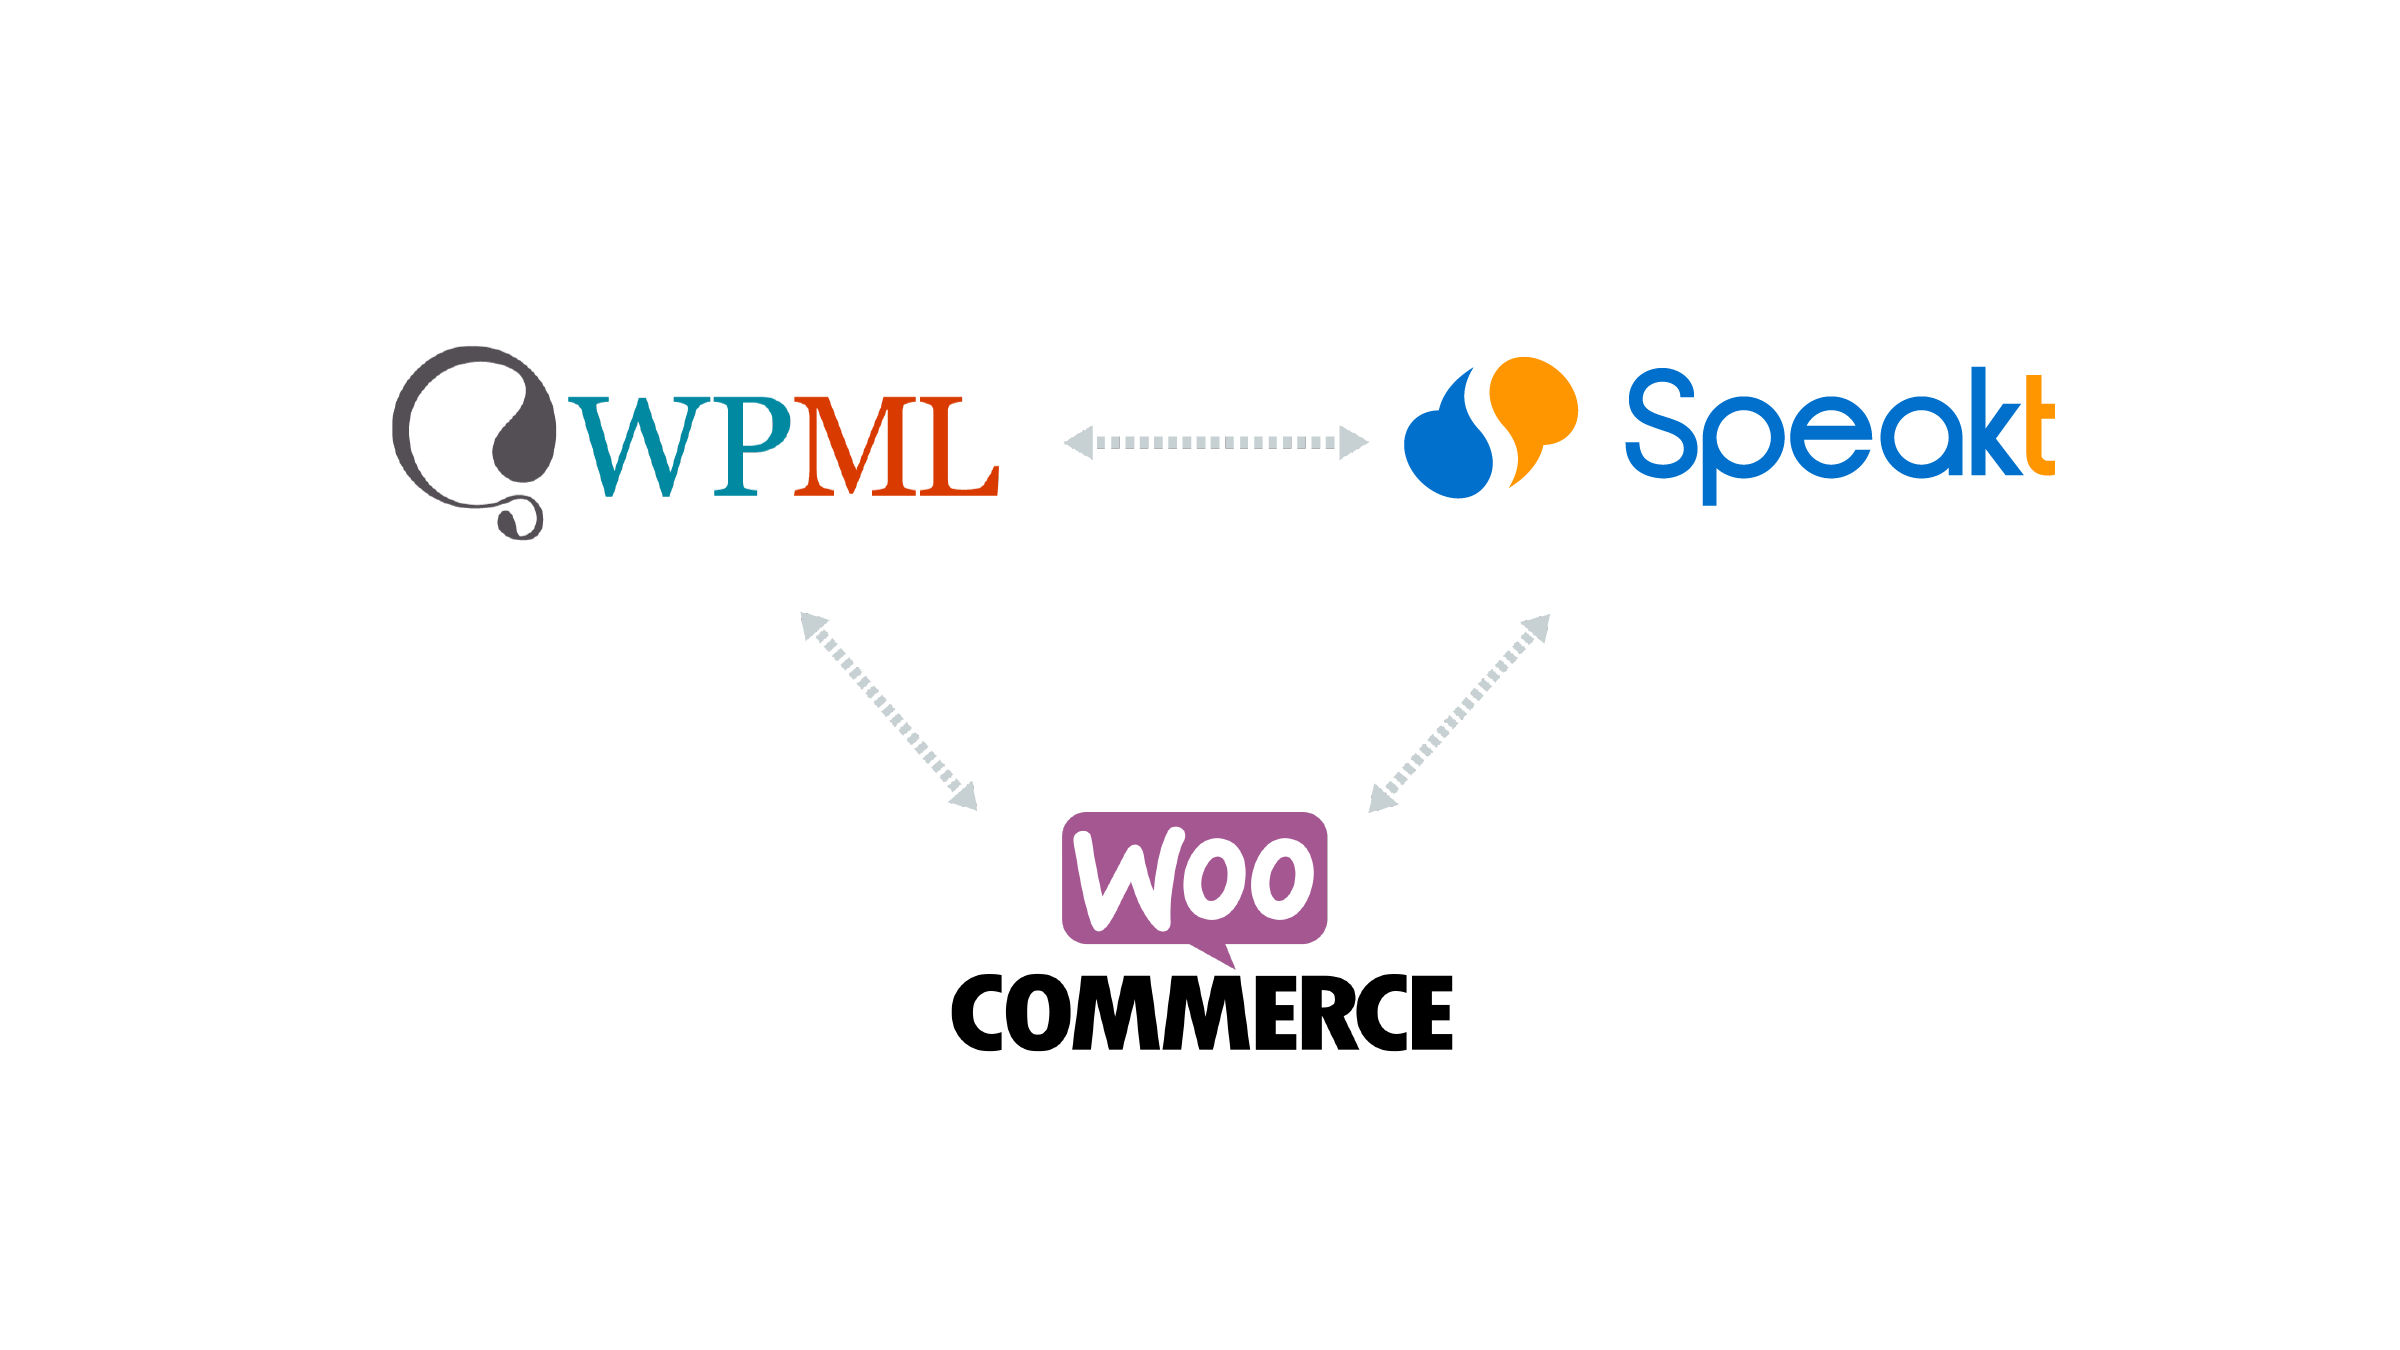 translating woocommerce wpml